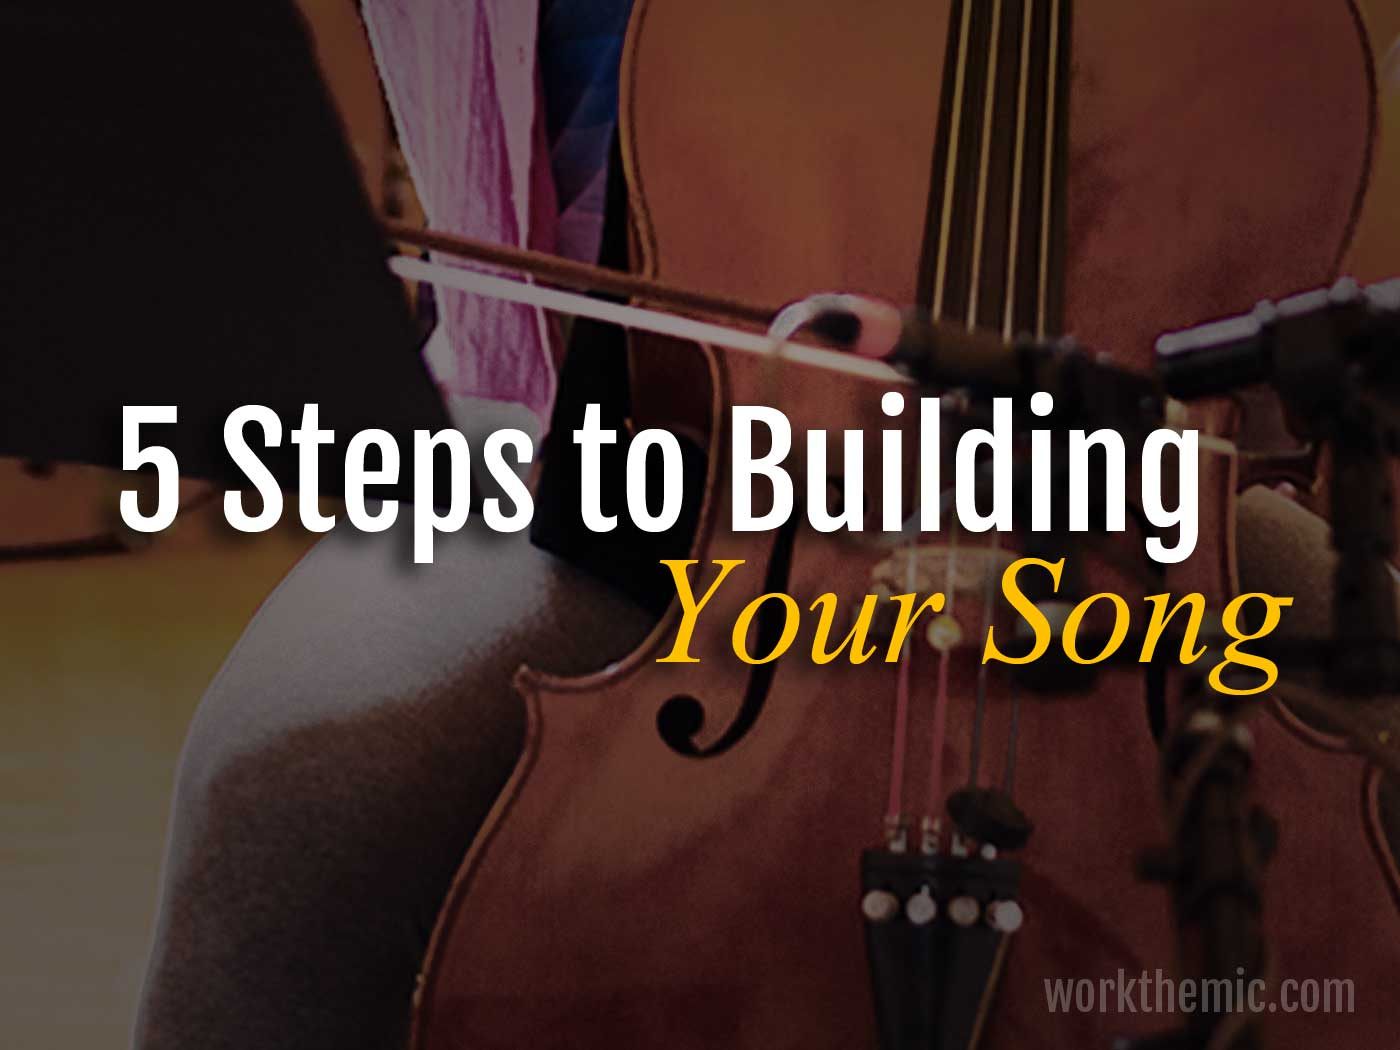 5 steps to building your song